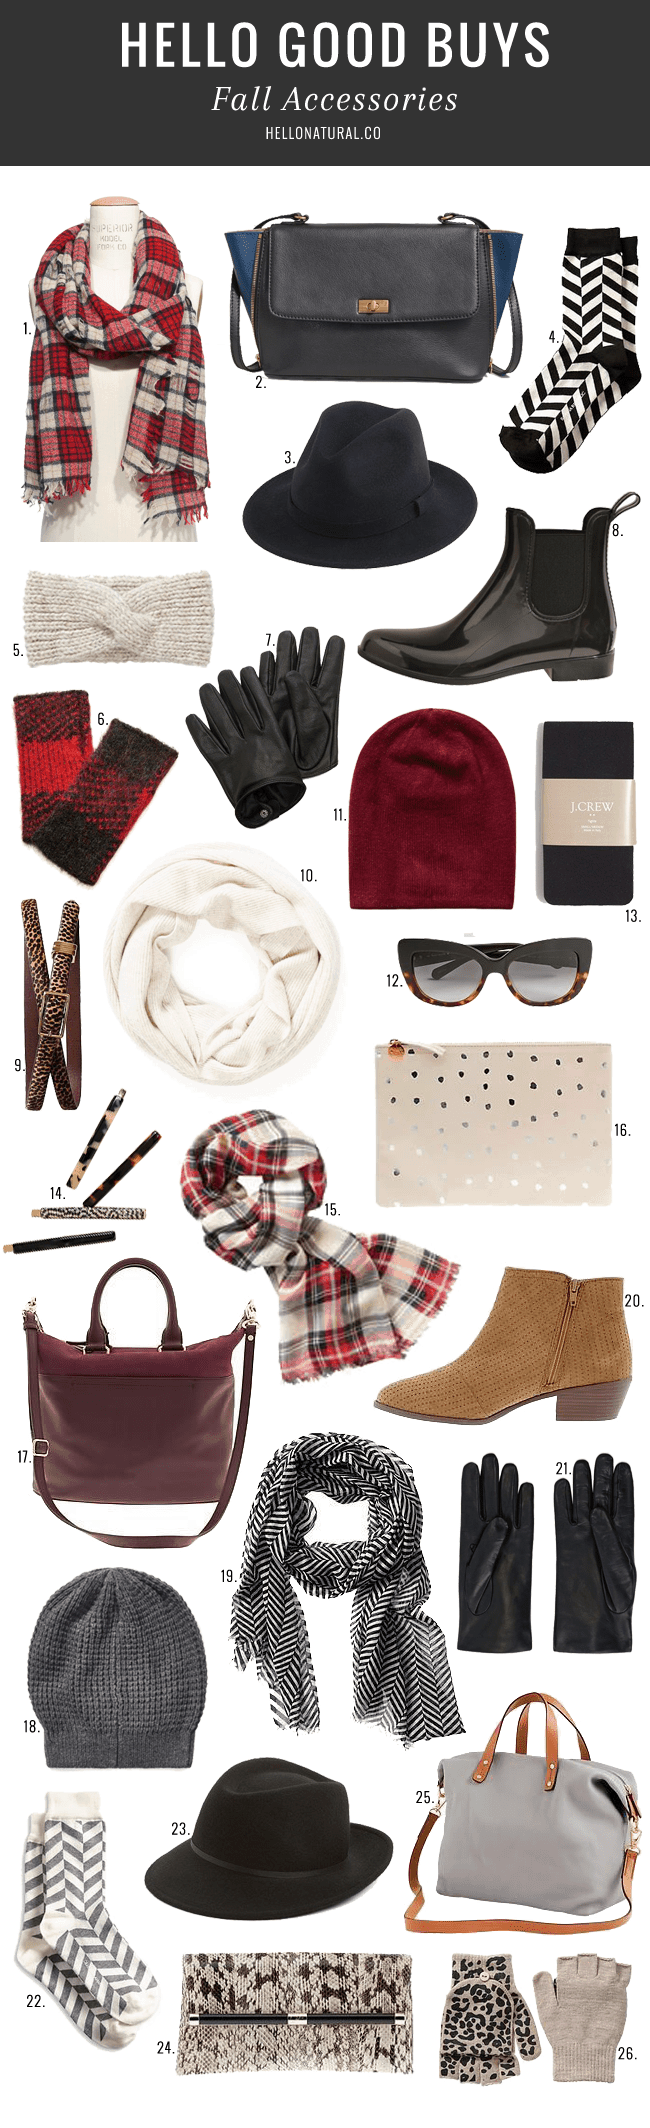 Must-Have Fall Accessories for 2014 | HelloGlow.co